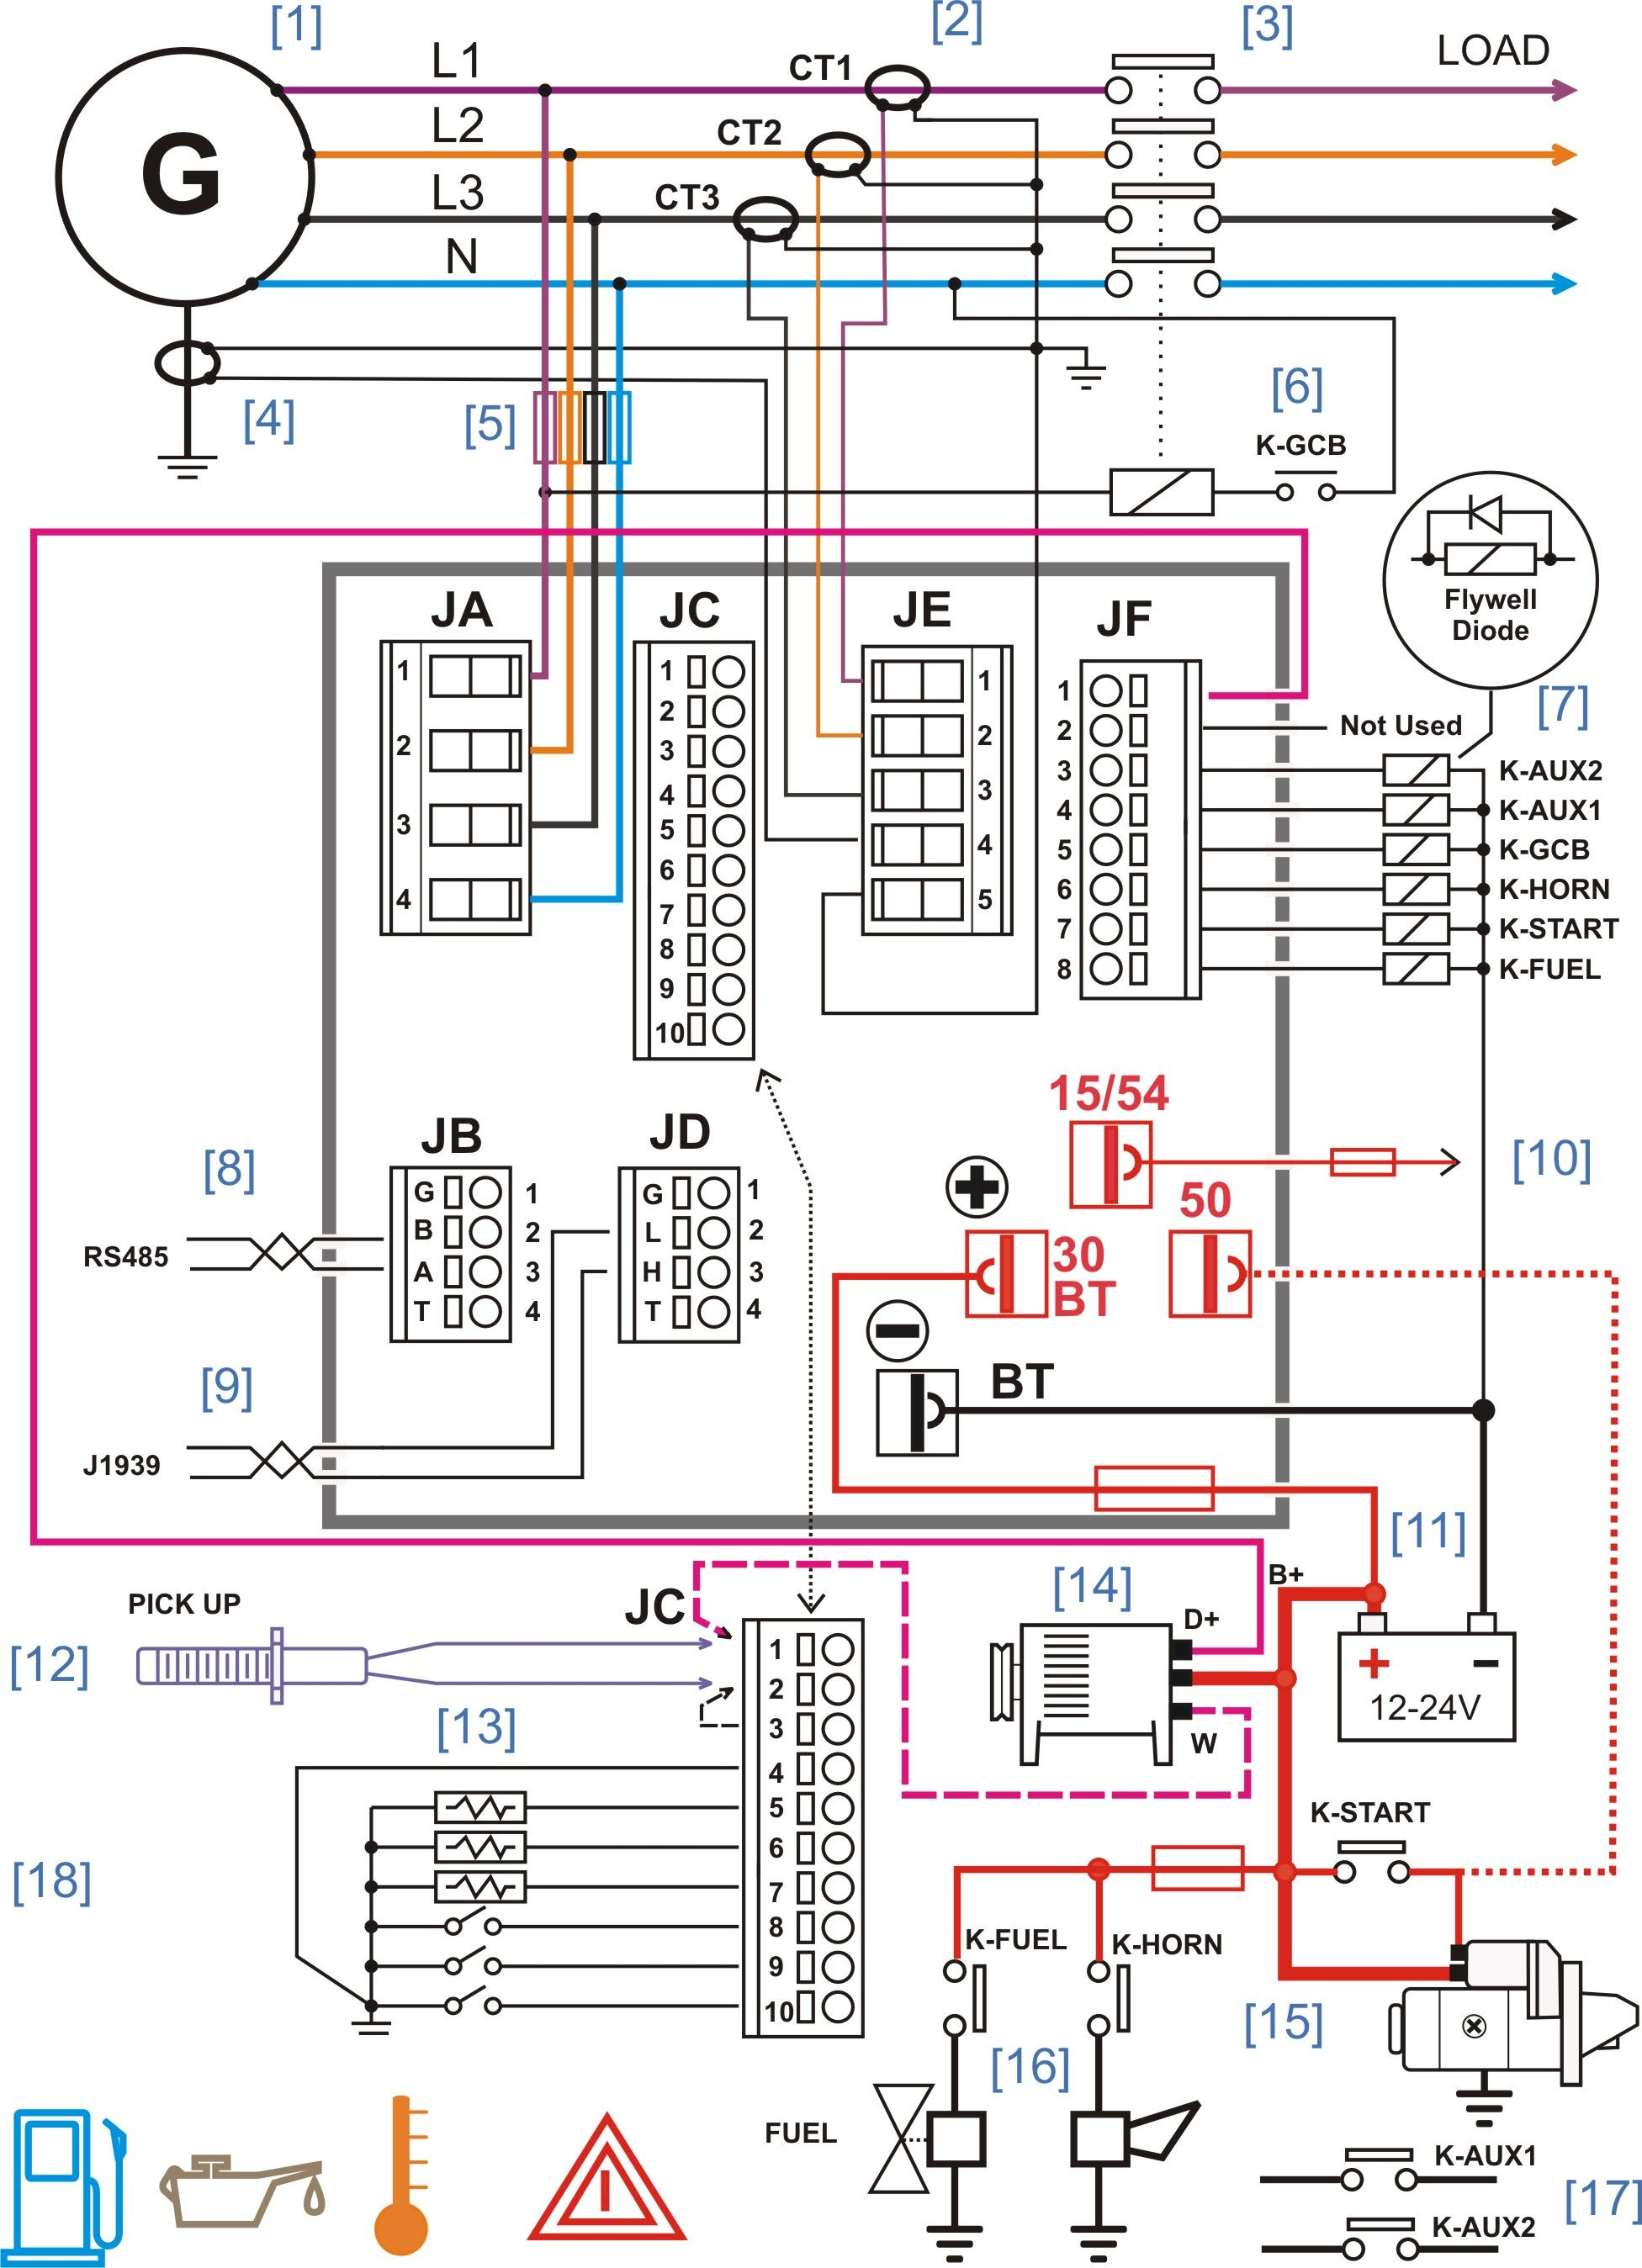 Ac Panel Wiring - Wiring Data Diagram on single phase transformer connections diagram, process diagram, system block diagram, 2 phase transformer diagram, single phase drum switch connection diagram, 2 speed motor starter diagram, french drain diagram, electric motor diagram, 2 phase stepper motor, phase transition diagram, knee joint diagram, single phase ac generator diagram, 2 phase stepping motor, 120 230v single phase dual voltage motor diagram, 3 phase 2 speed motor diagram, baldor single phase motor diagram, nema 1 starter diagram,